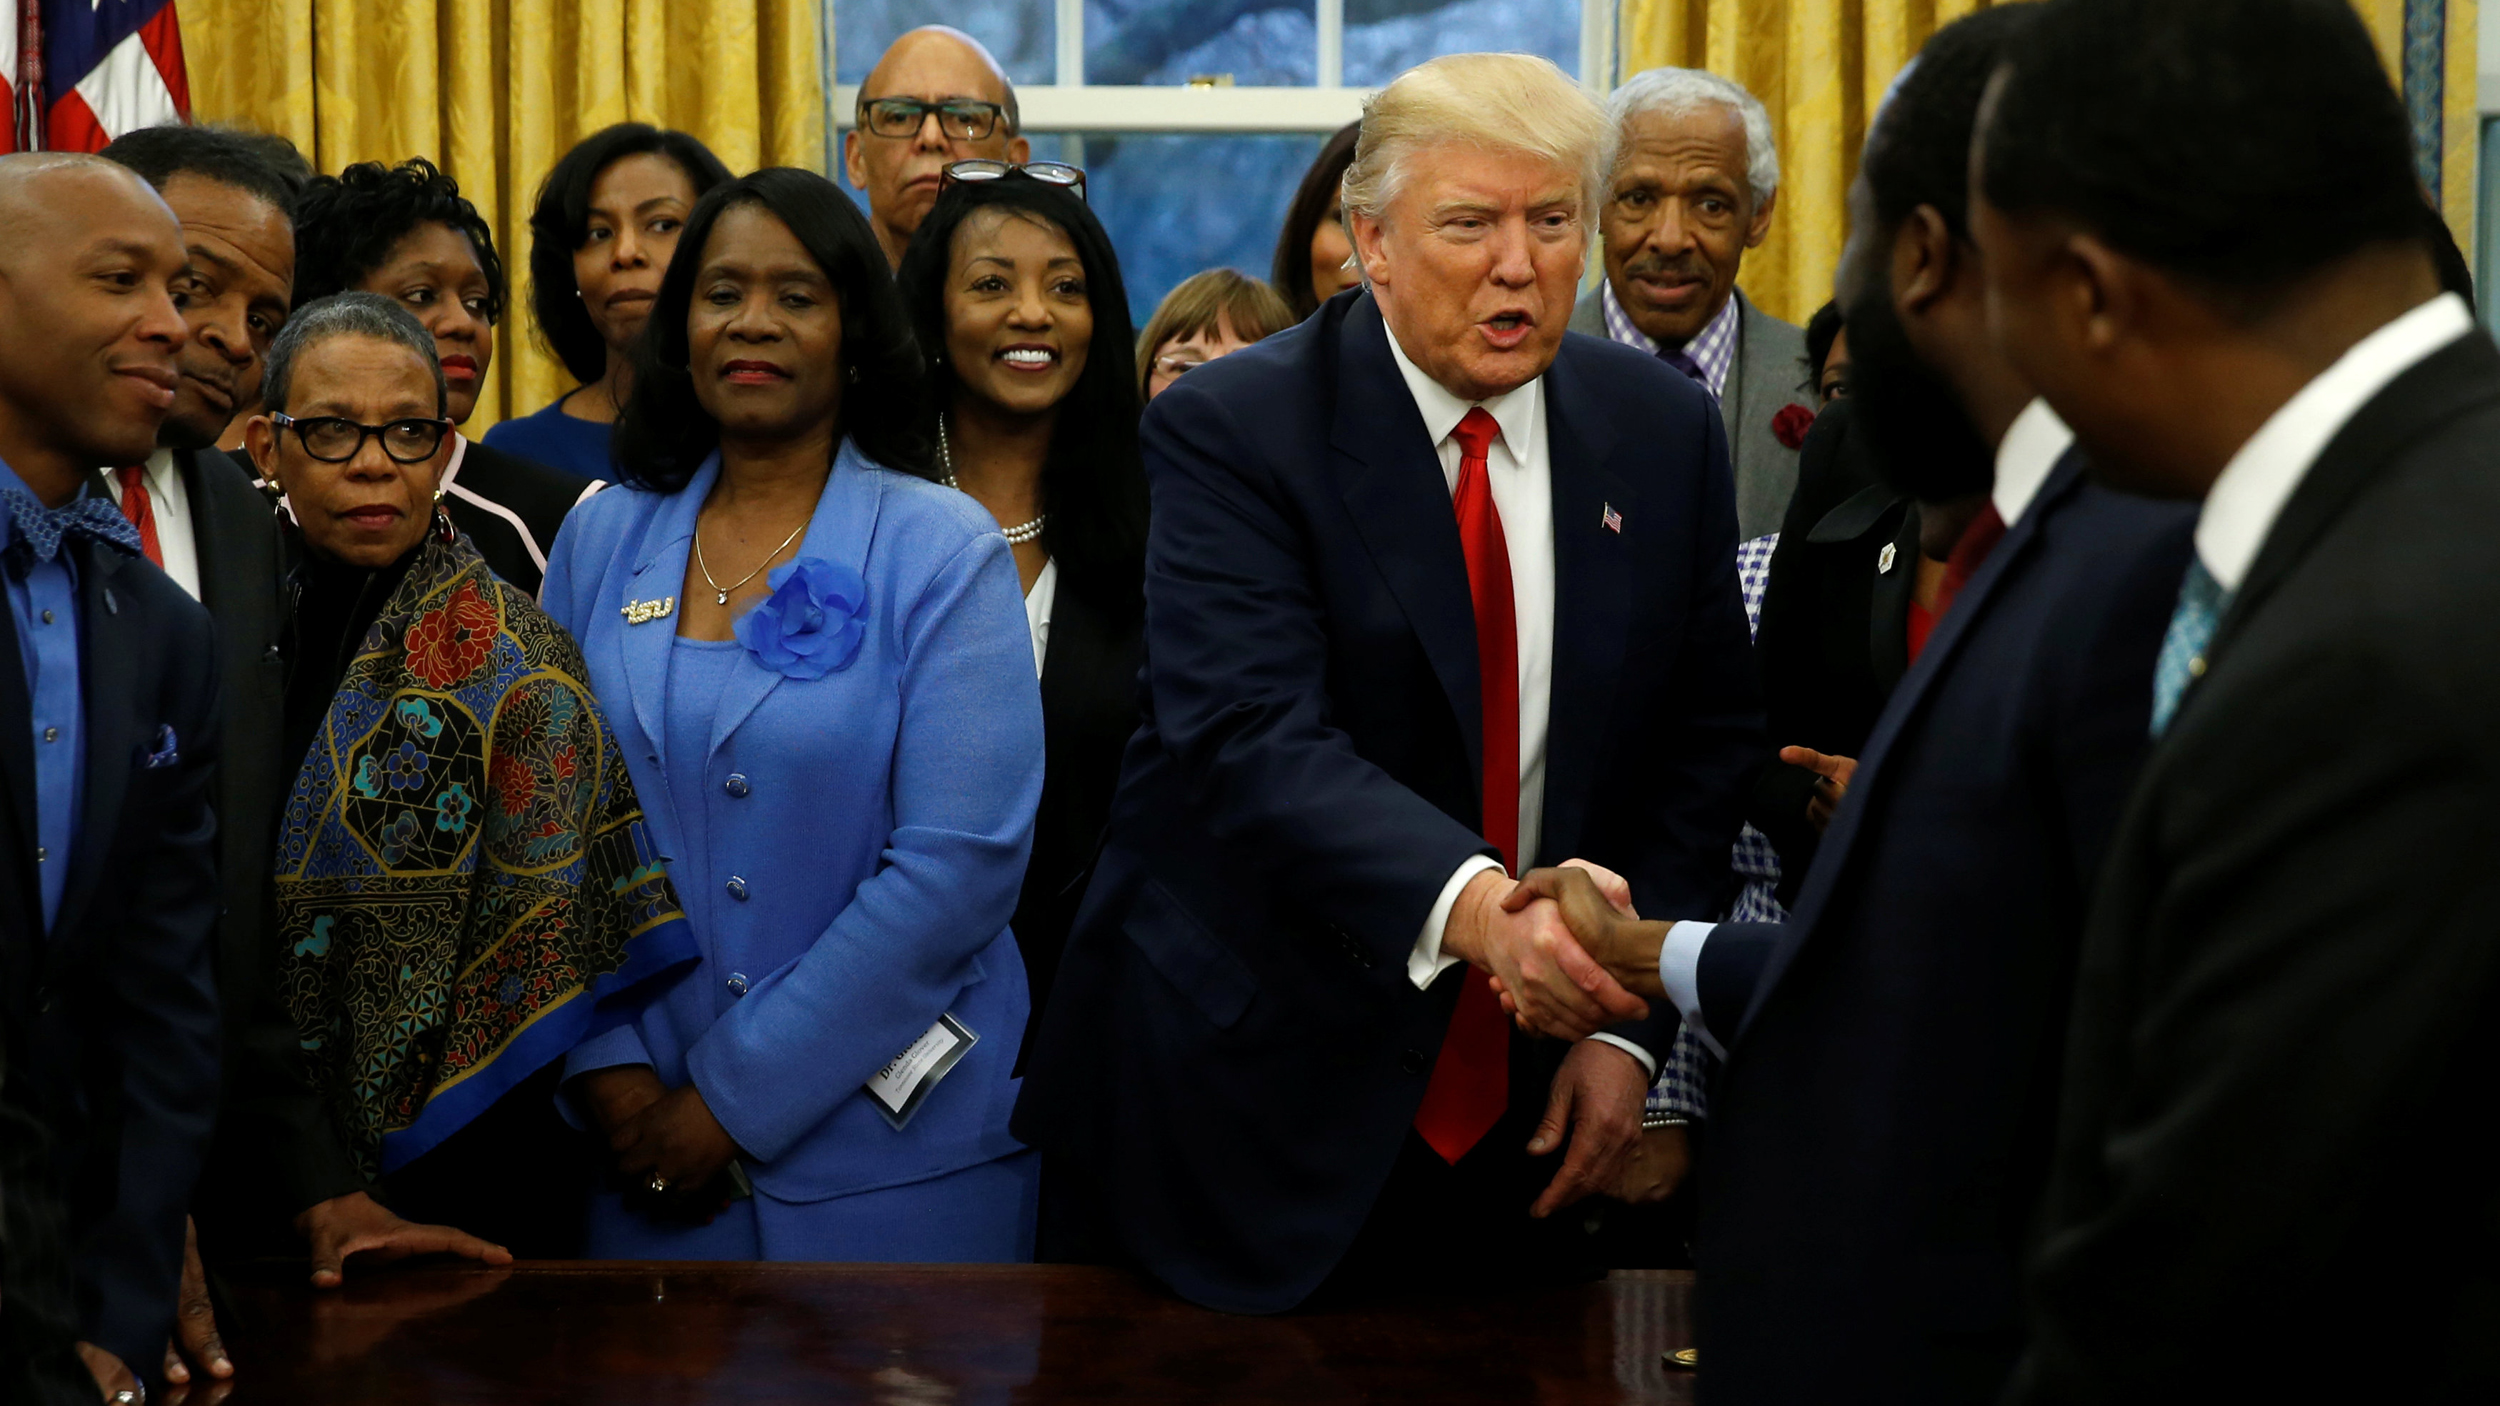 Trump welcomes the leaders of dozens of historically black colleges and universities (HBCU) in the Oval Office at the White House in Washington